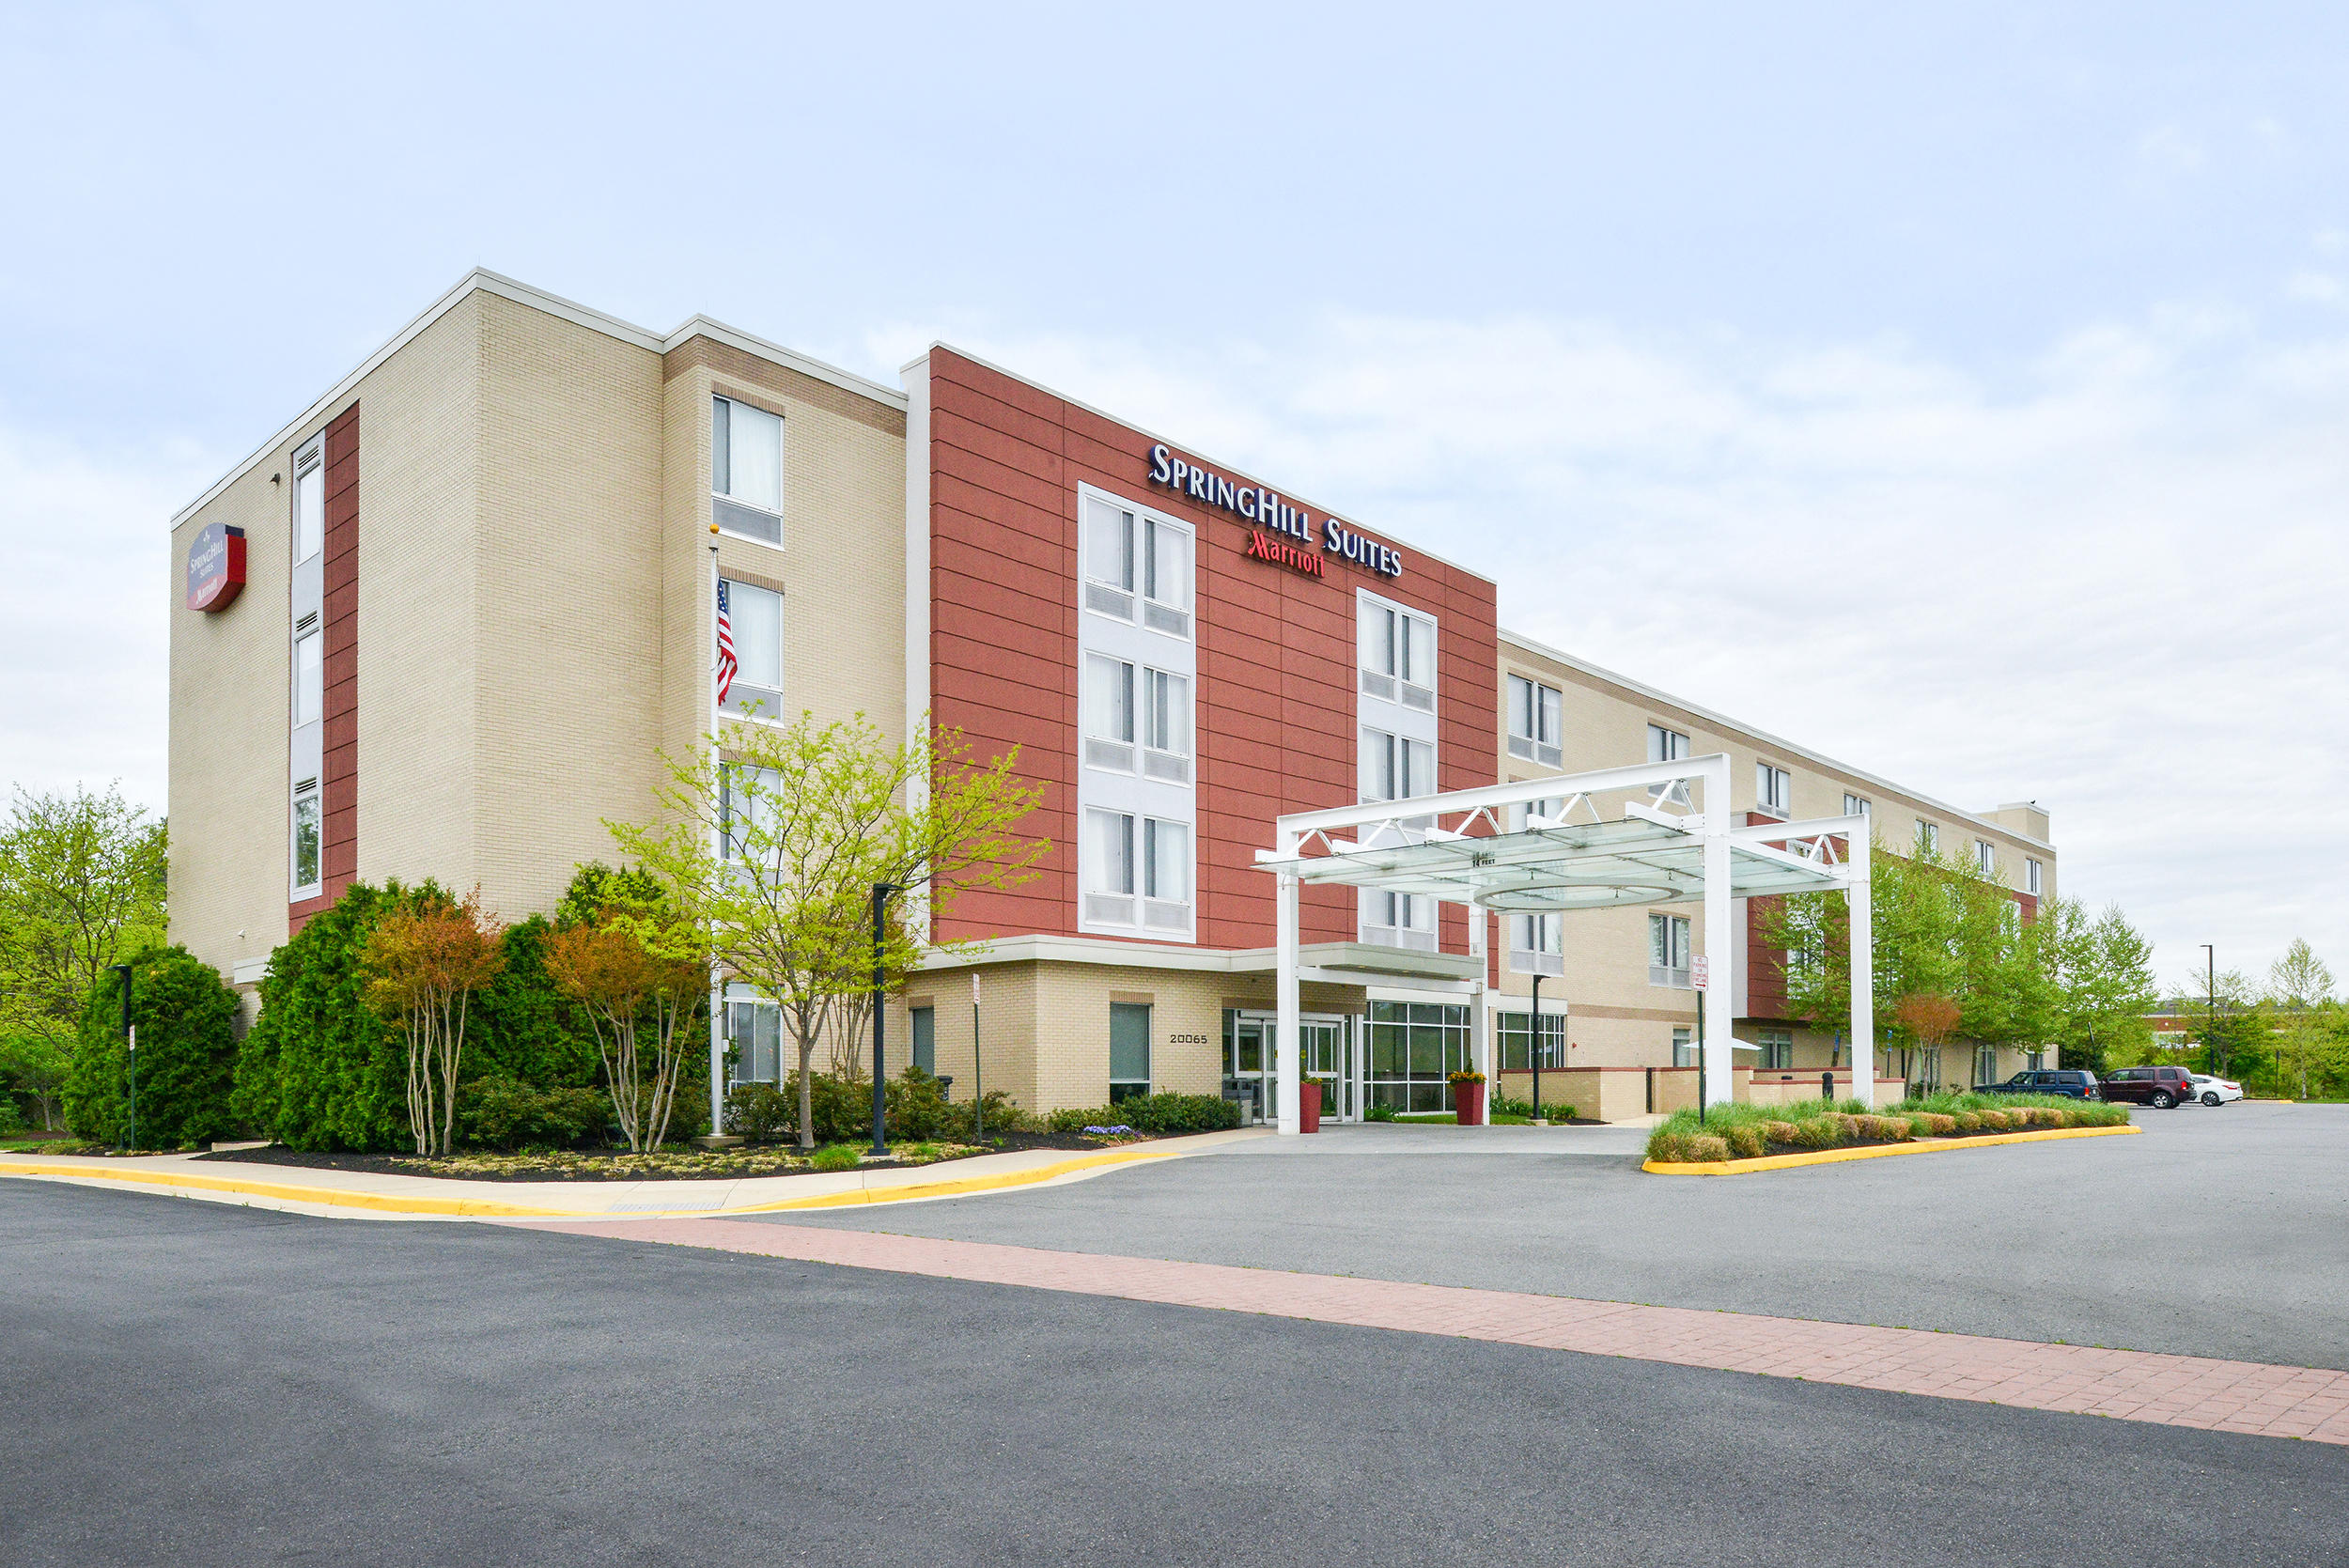 Springhill Suites By Marriott Ashburn Dulles North In Ashburn Va 703 723 9